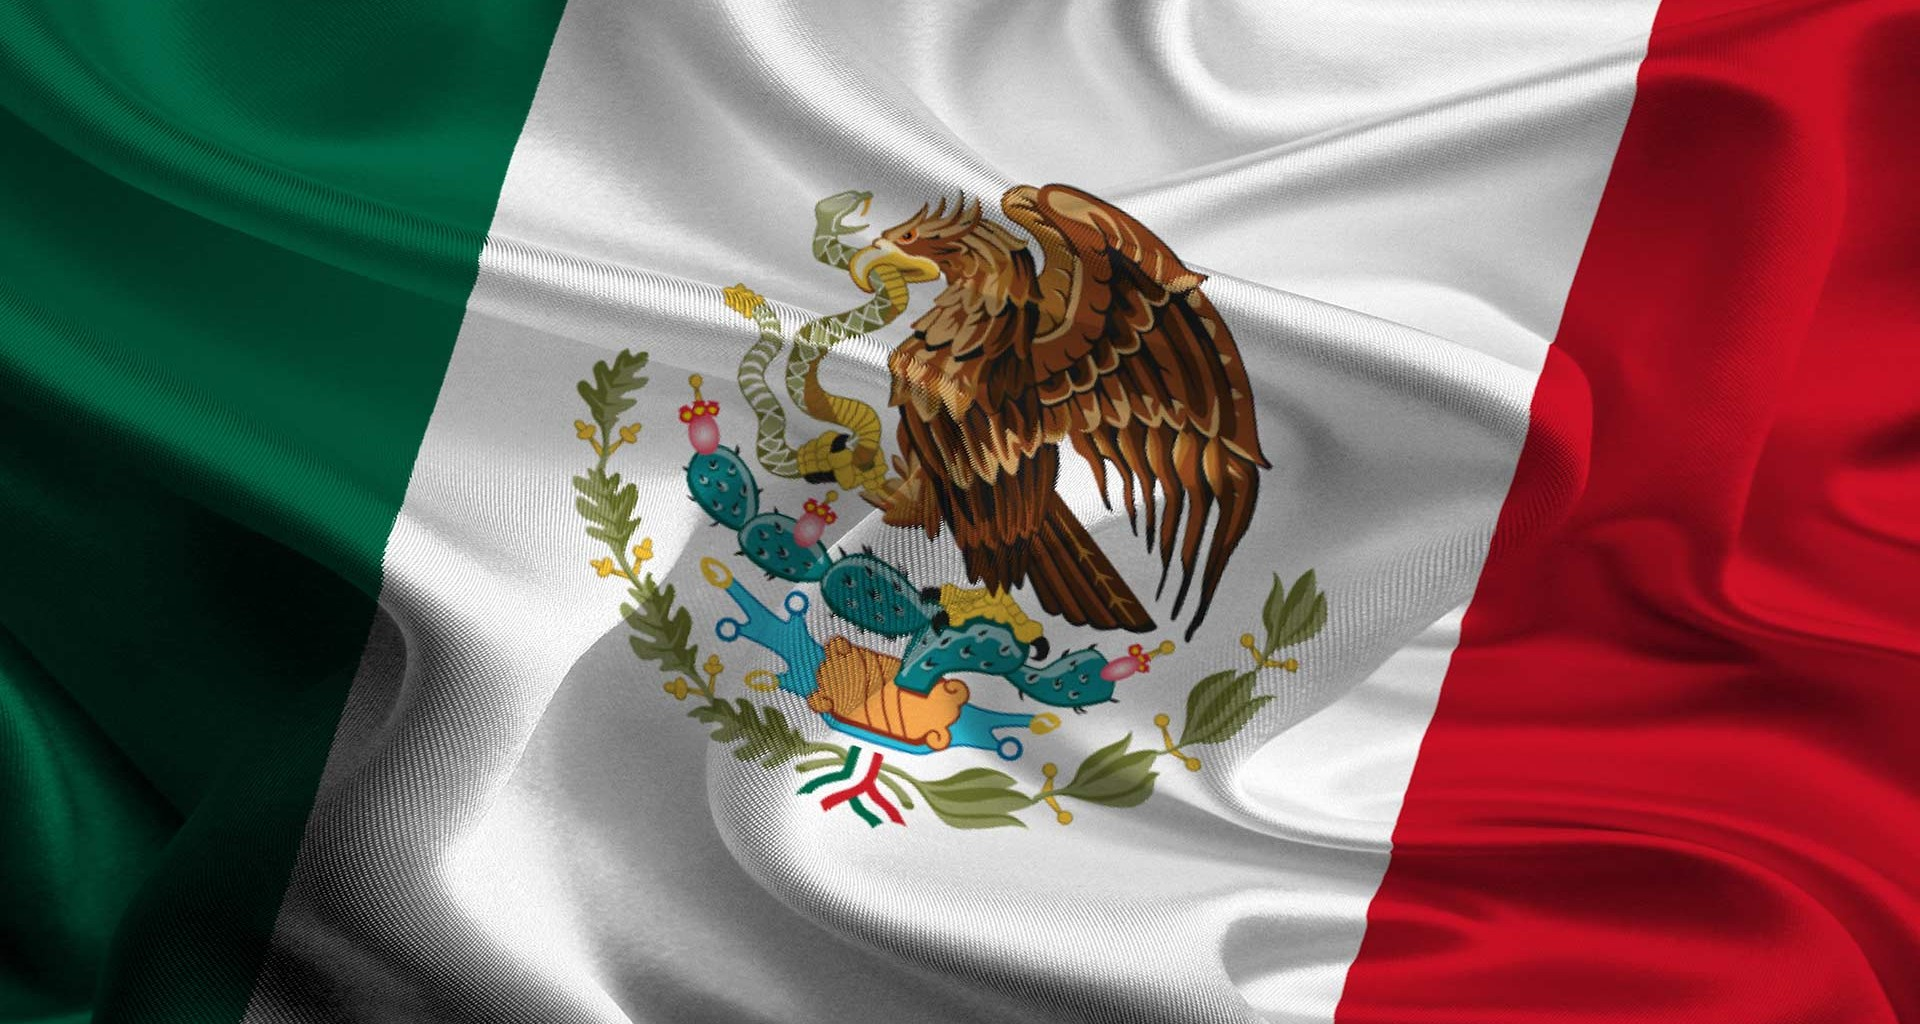 Mexico joins the top 10 for FDI attraction in 2020